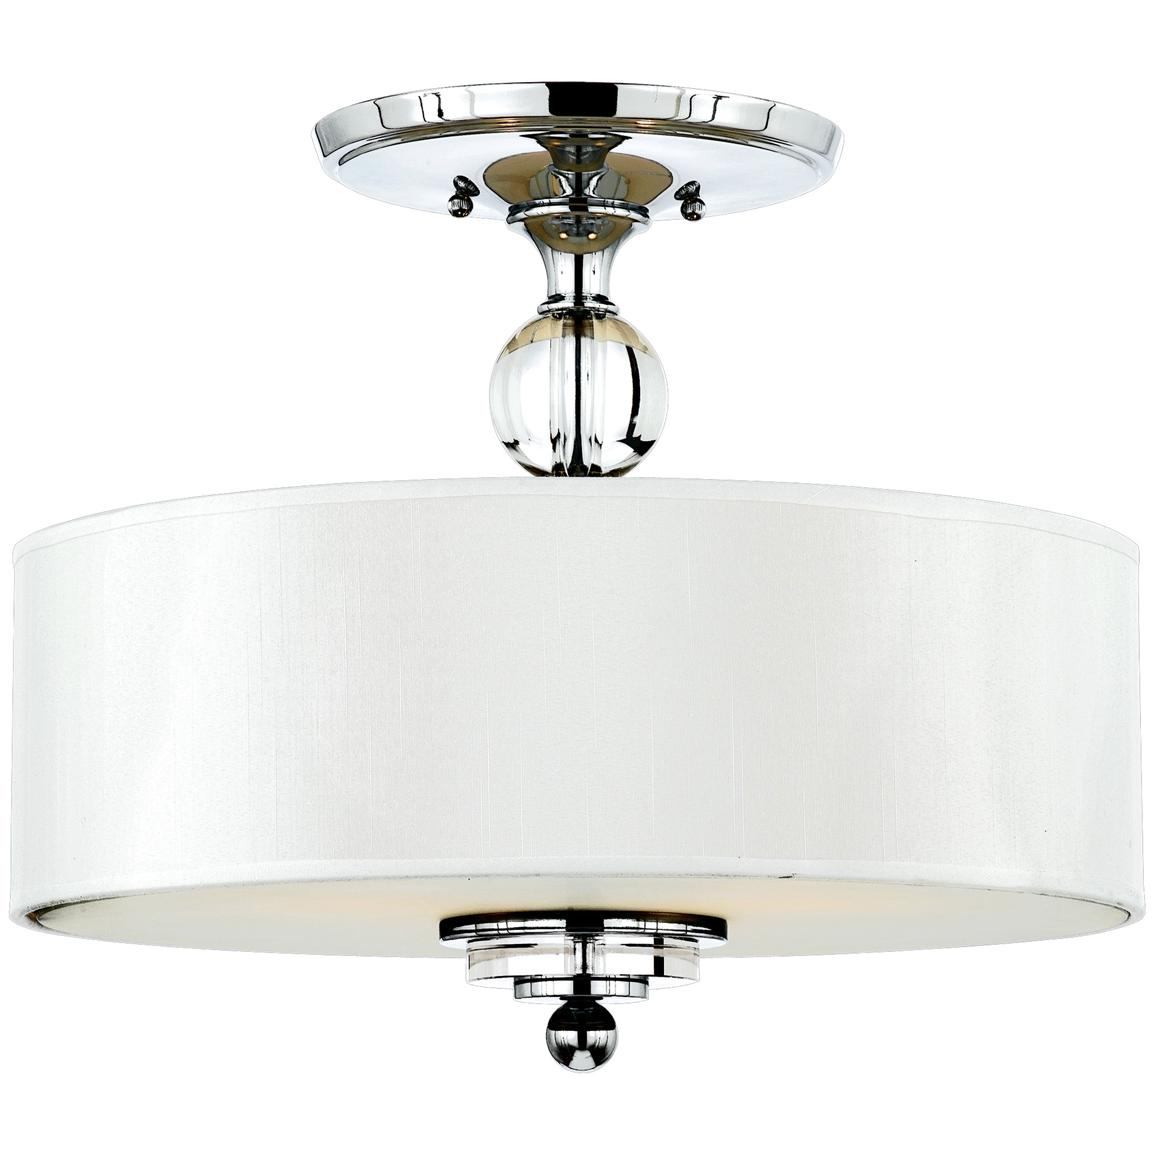 Downtown Large Semi-flush Light Fixture from Quoizel®, Polished Chrome